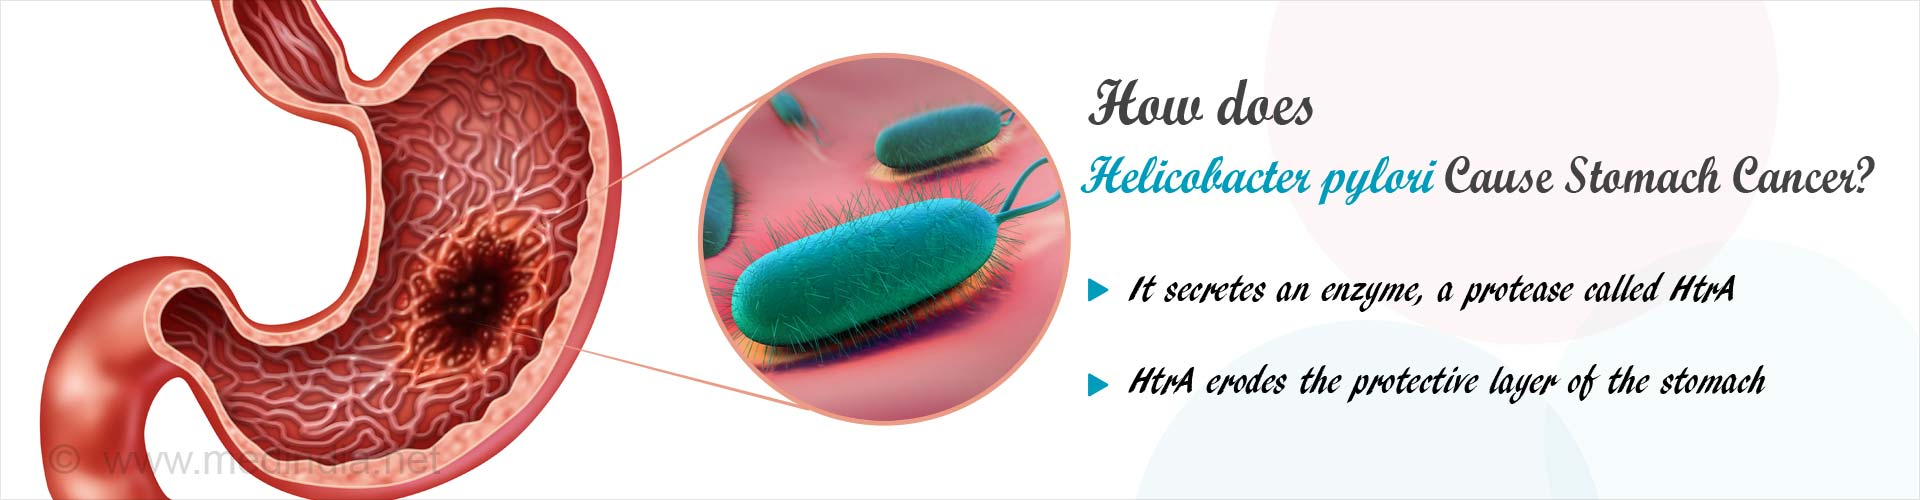 How does helicobacter pylori cause stomach cancer? - it secretes an enzyme, a protease called HtrA - HtrA erodes the protective layer of the stomach